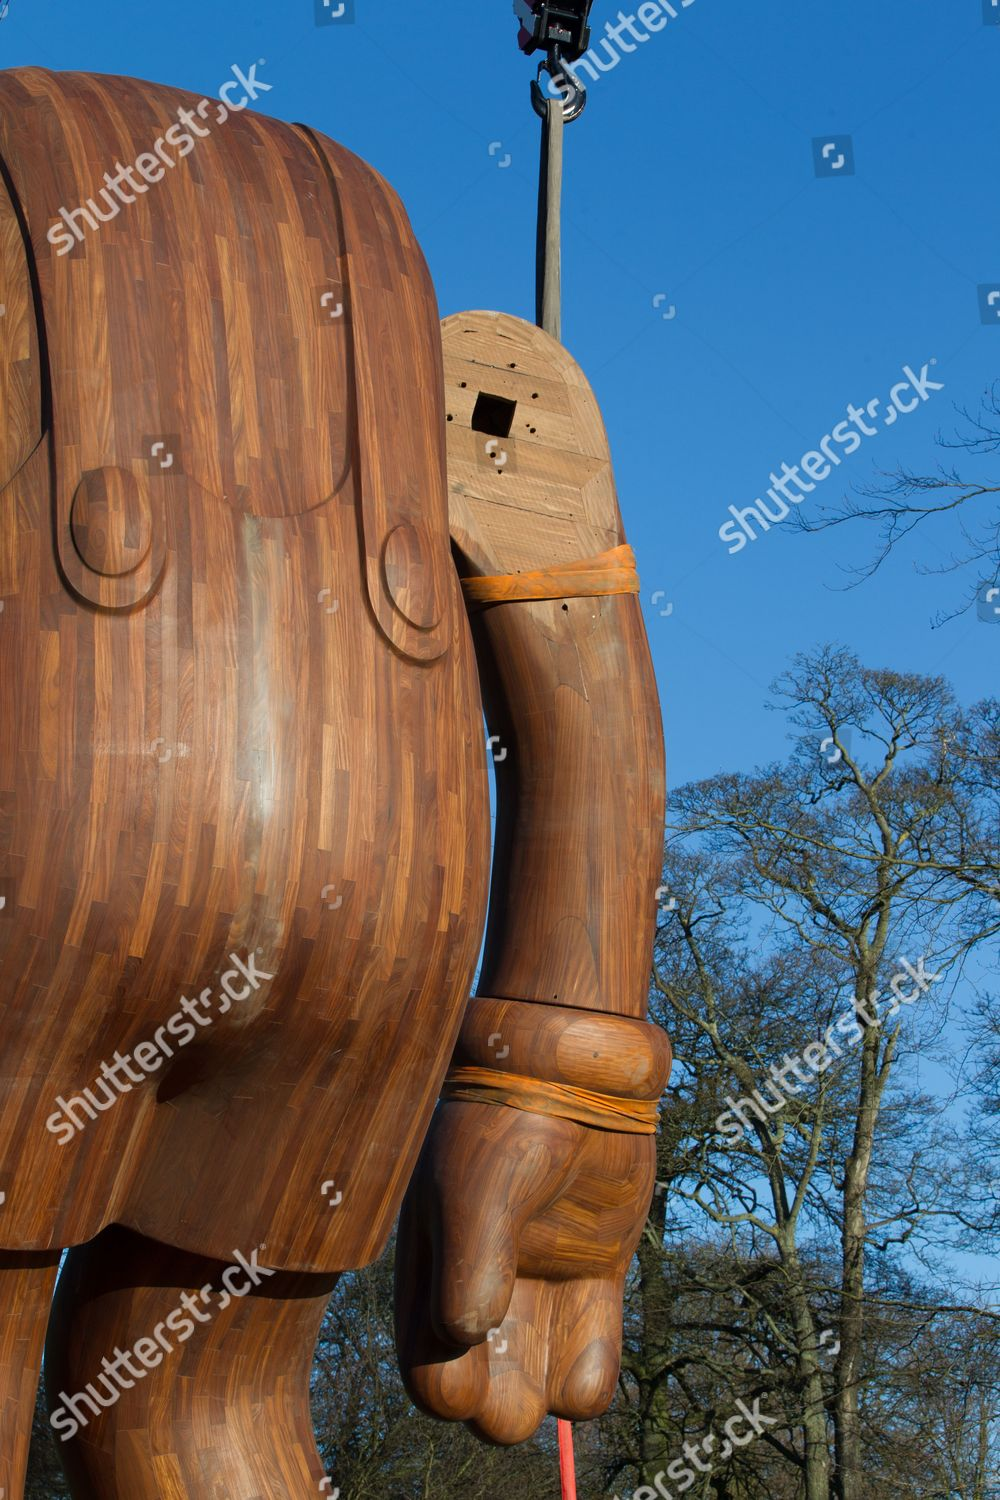 bb5069c4 KAWS exhibition at the Yorkshire Sculpture Park, Bretton, West Yorkshire,  Britain Stock Image by David Empson for editorial use, Jan 15, 2016